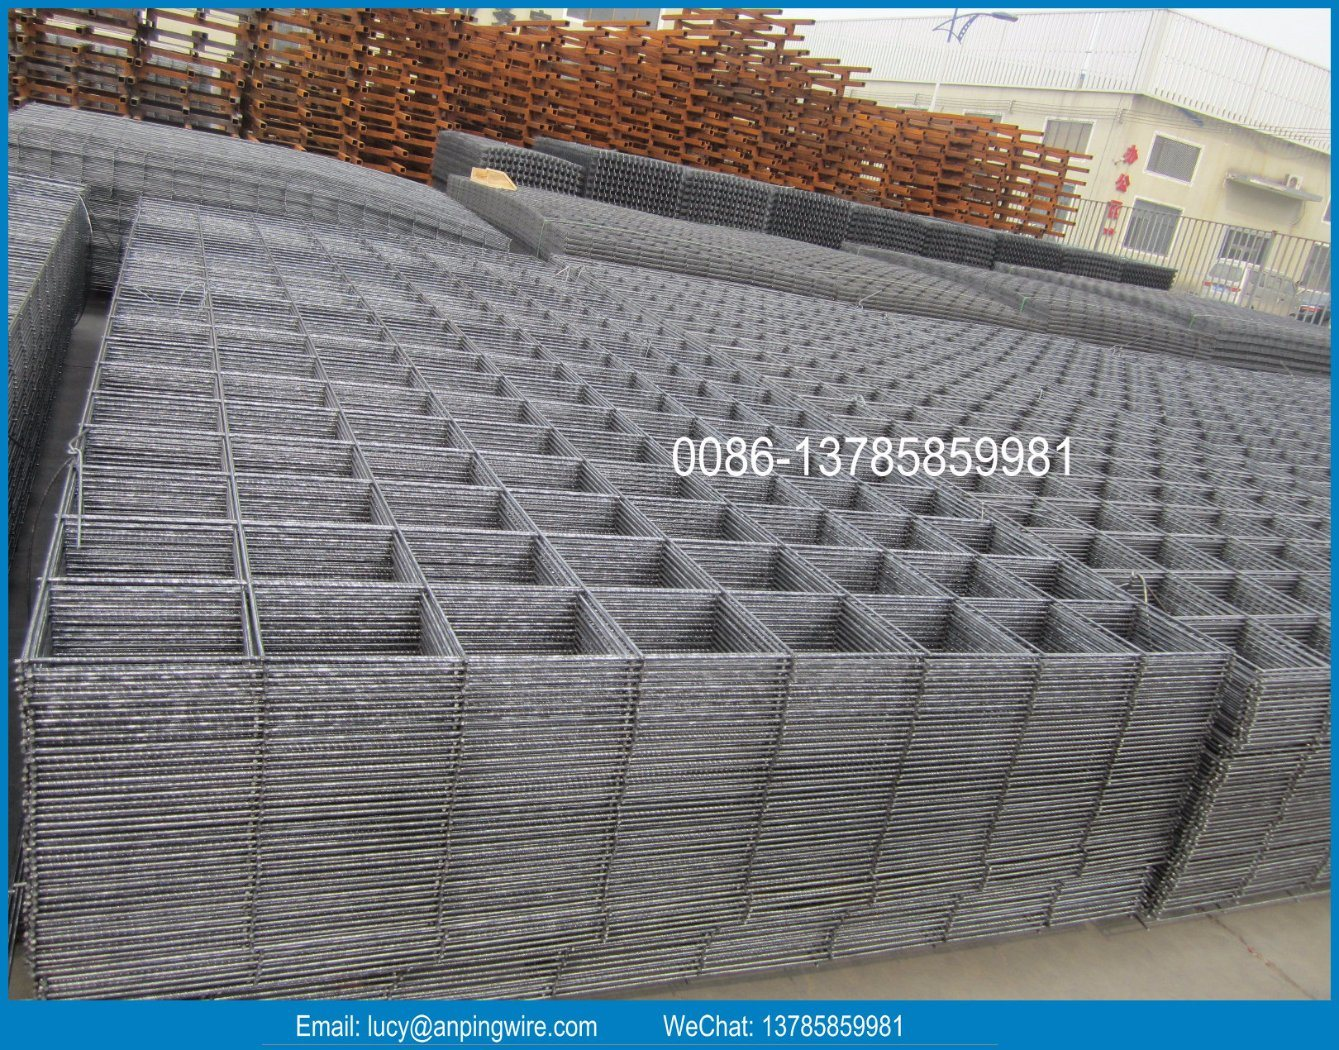 China Reinforcement Concrete Mesh, Reinforcement Concrete Mesh ...